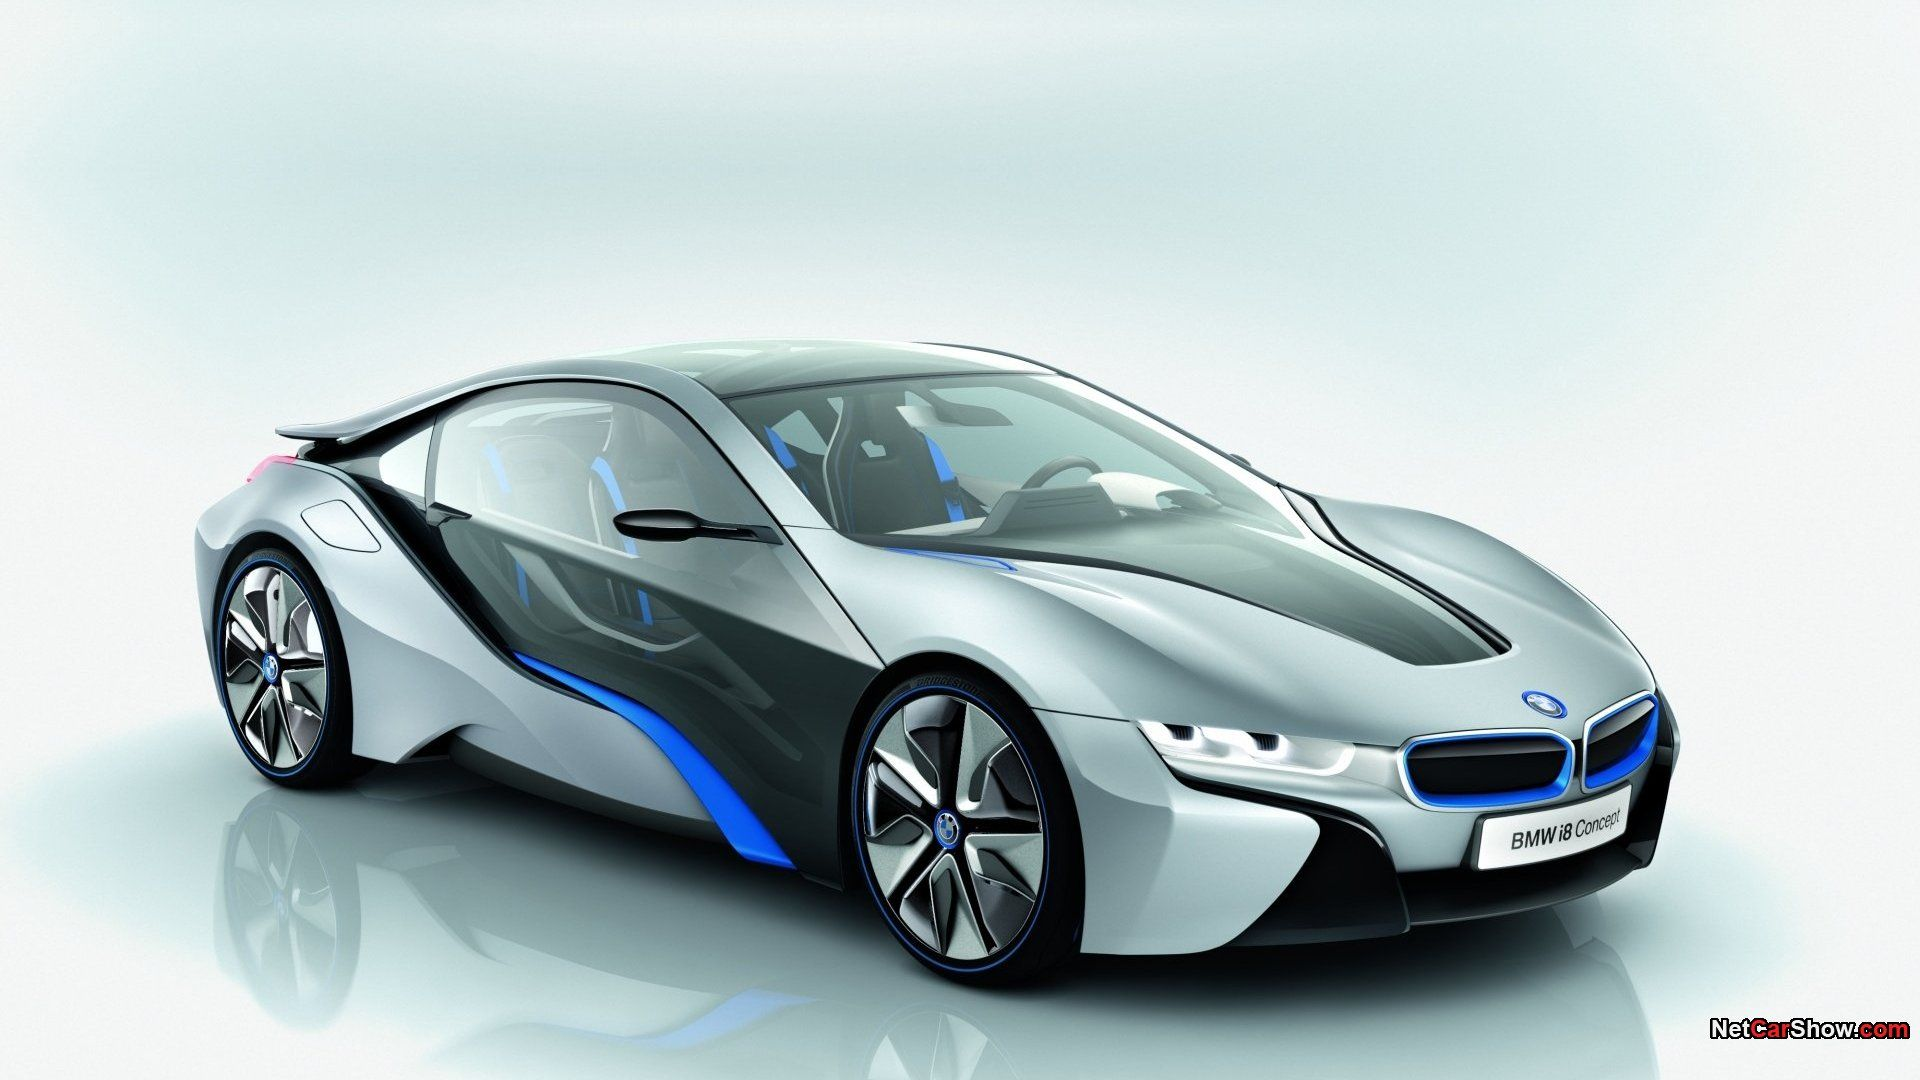 walpapers of cars car wallpapers bmw i8 download cars wallpaper